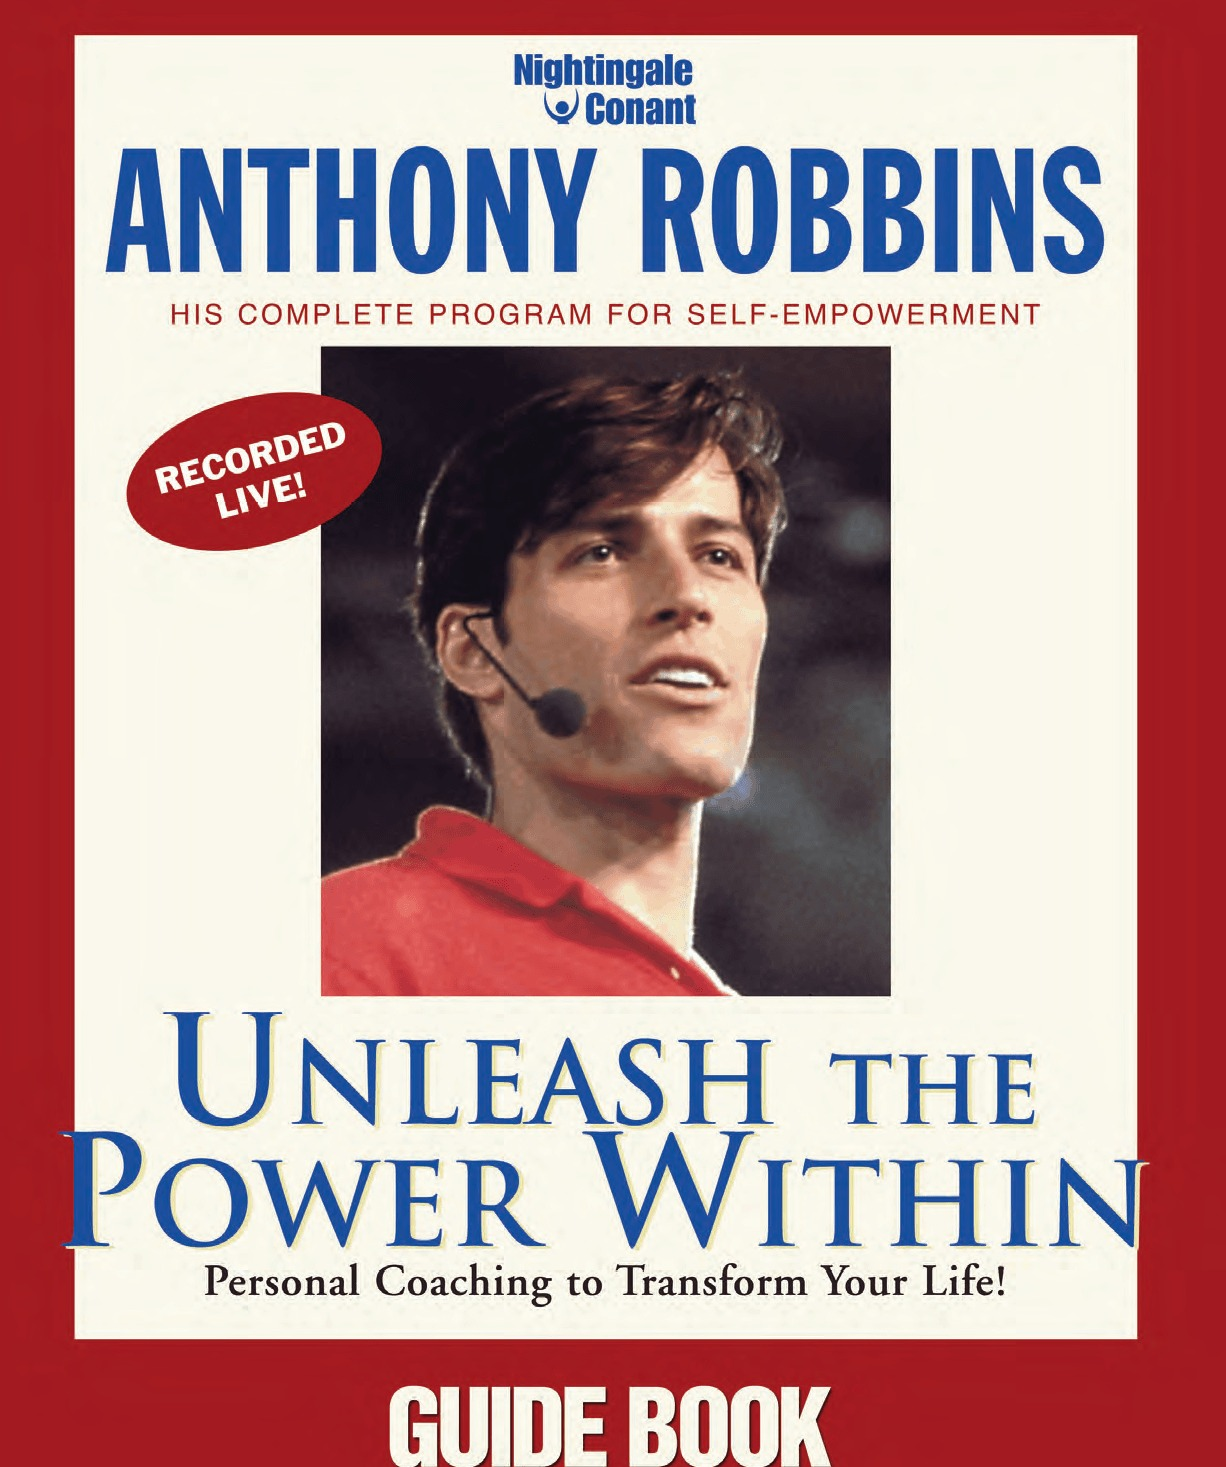 Anthony Robbins Unleash The Power Within